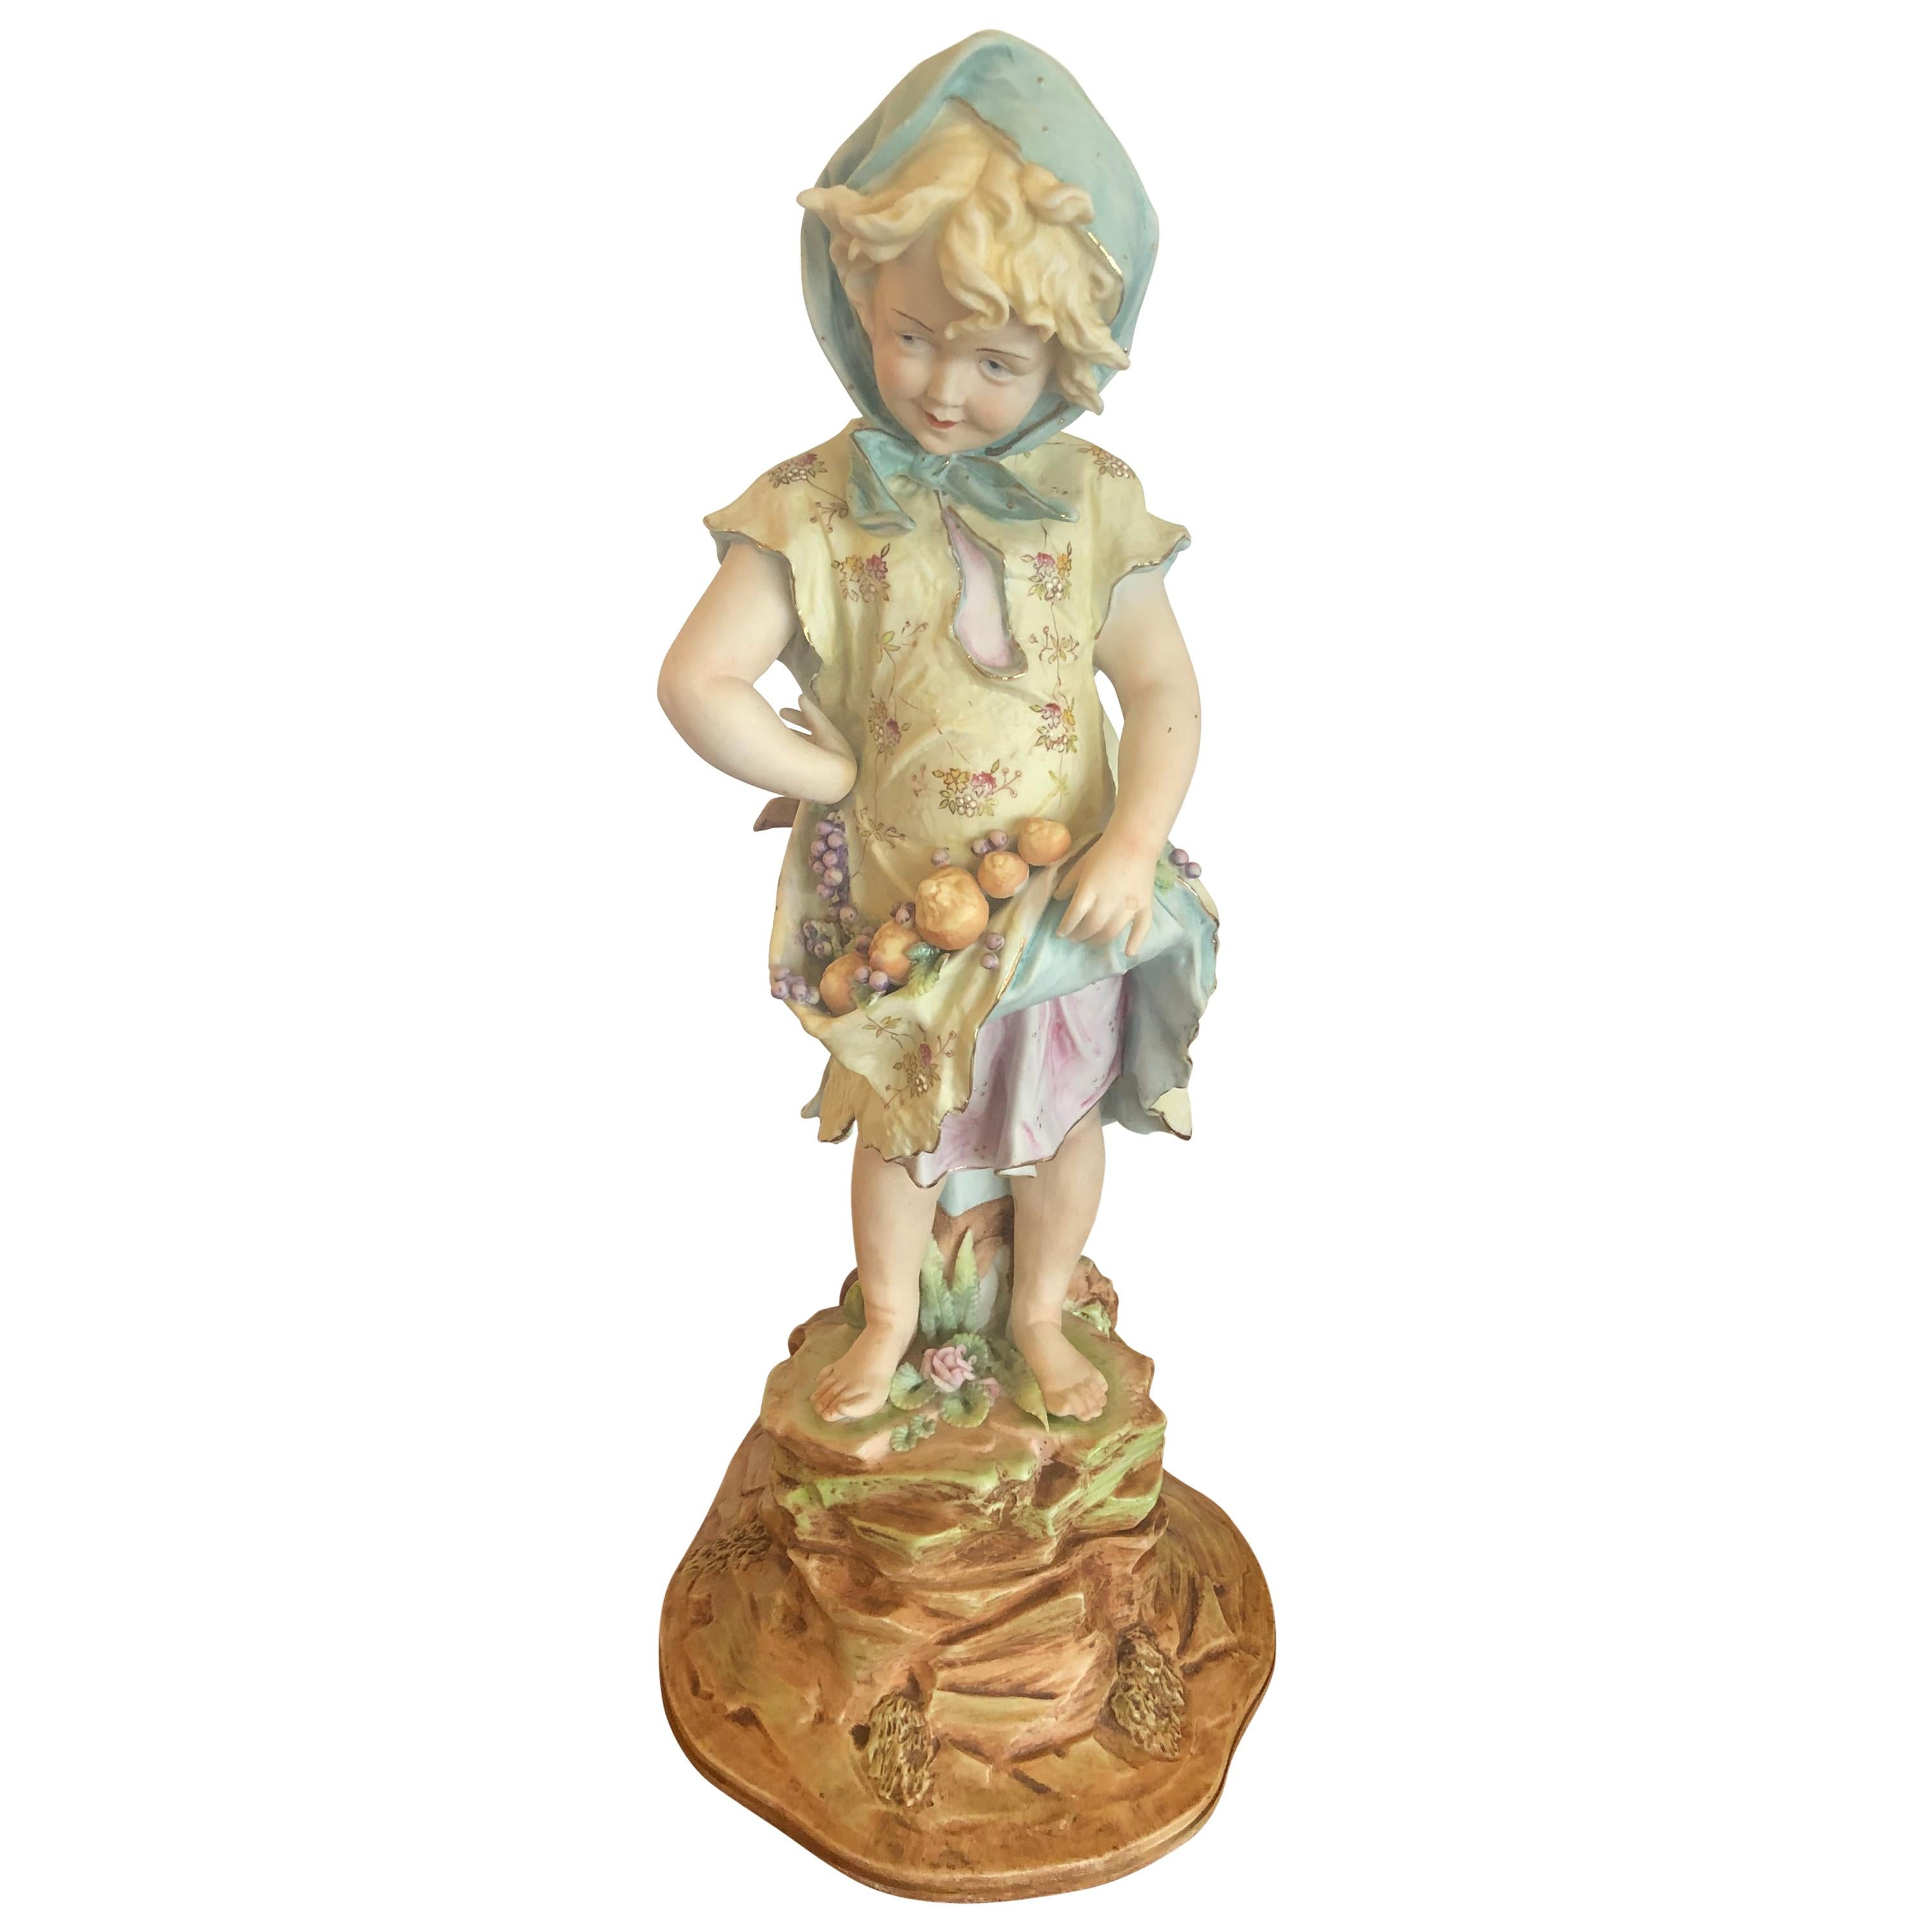 Charming Large Antique Hand Painted Parian Porcelain Figure of a Girl